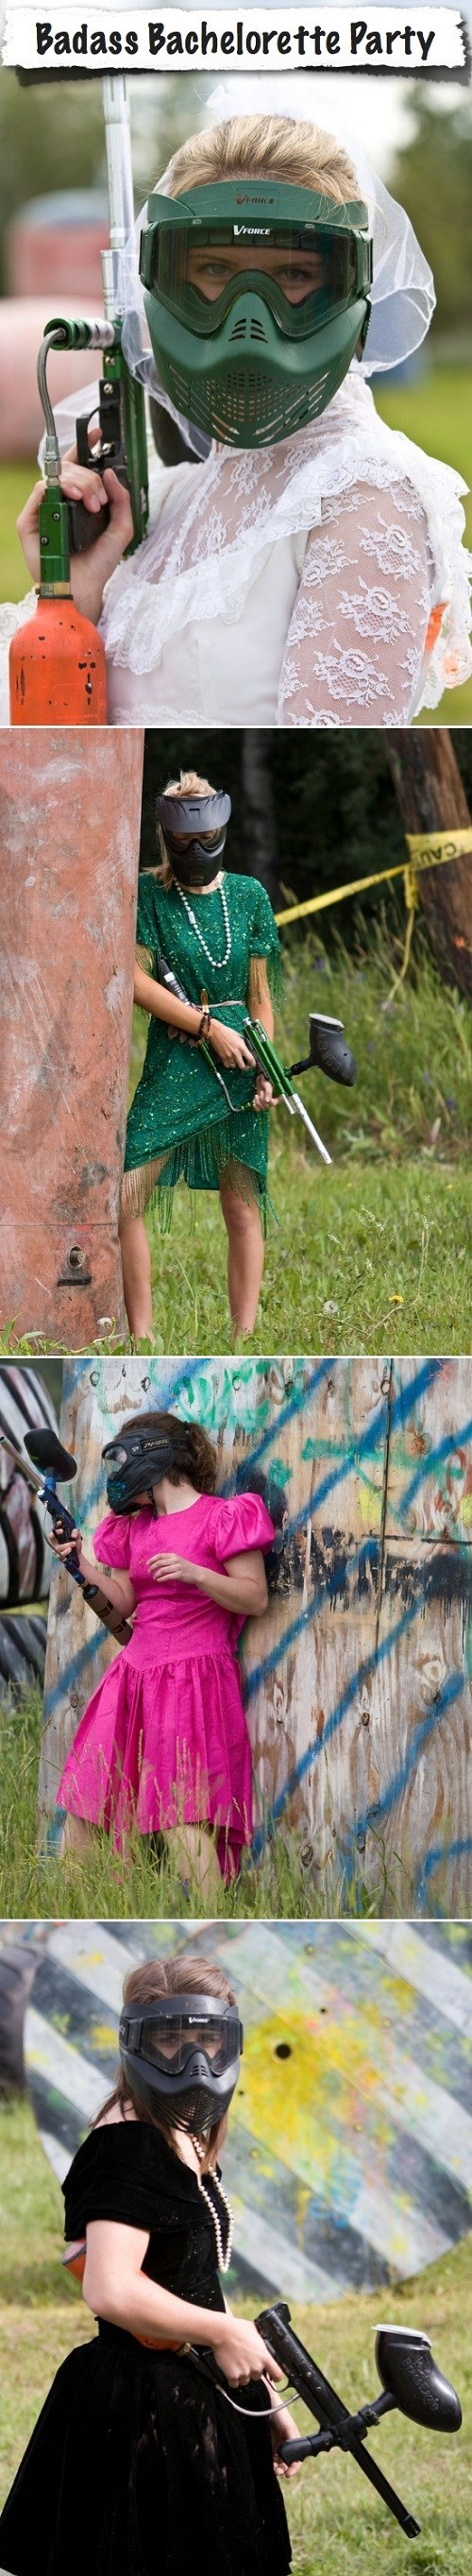 paintball bachelorette party good ideas poorly dressed g rated - 7728068096